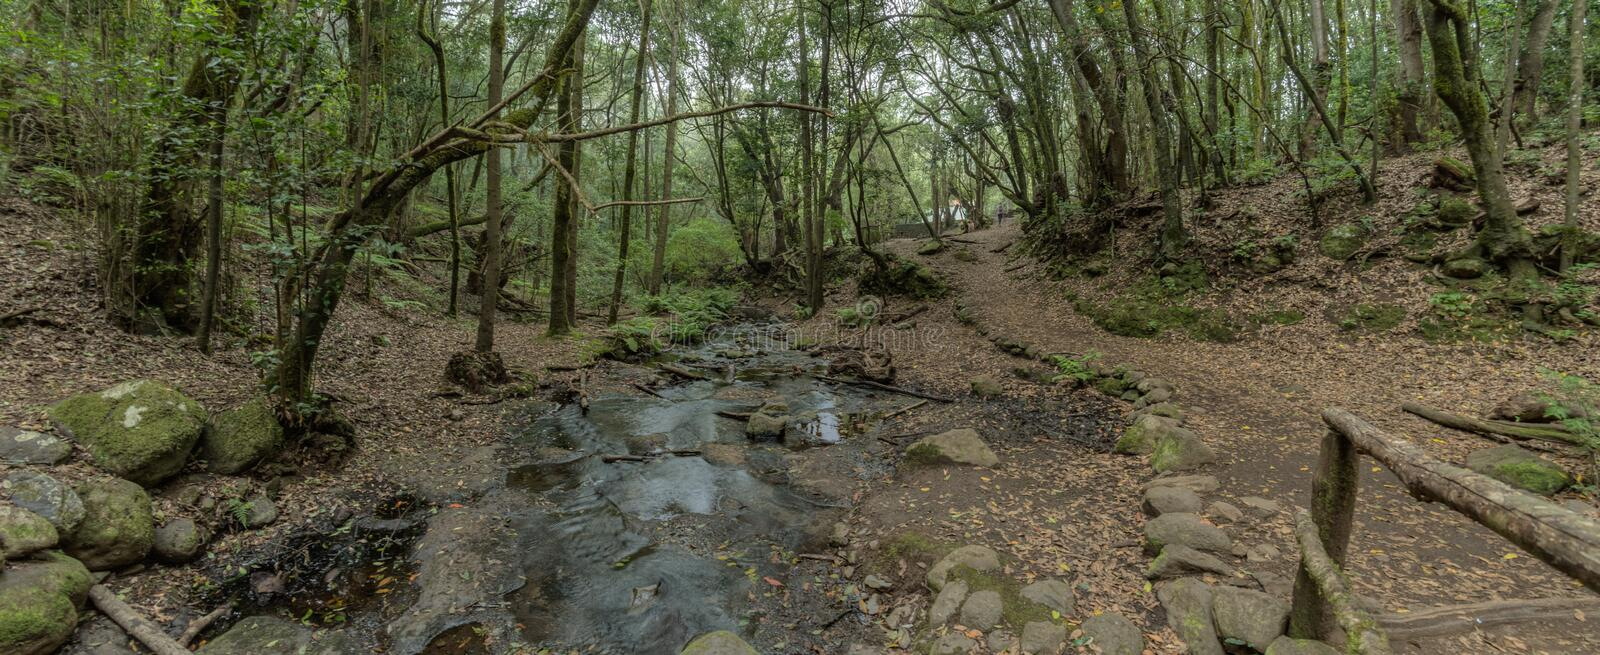 Super wide angle panorama. Relict forest on the slopes of the Garajonay National Park mountains. Giant Laurels and Tree Heather. Along narrow winding paths royalty free stock image